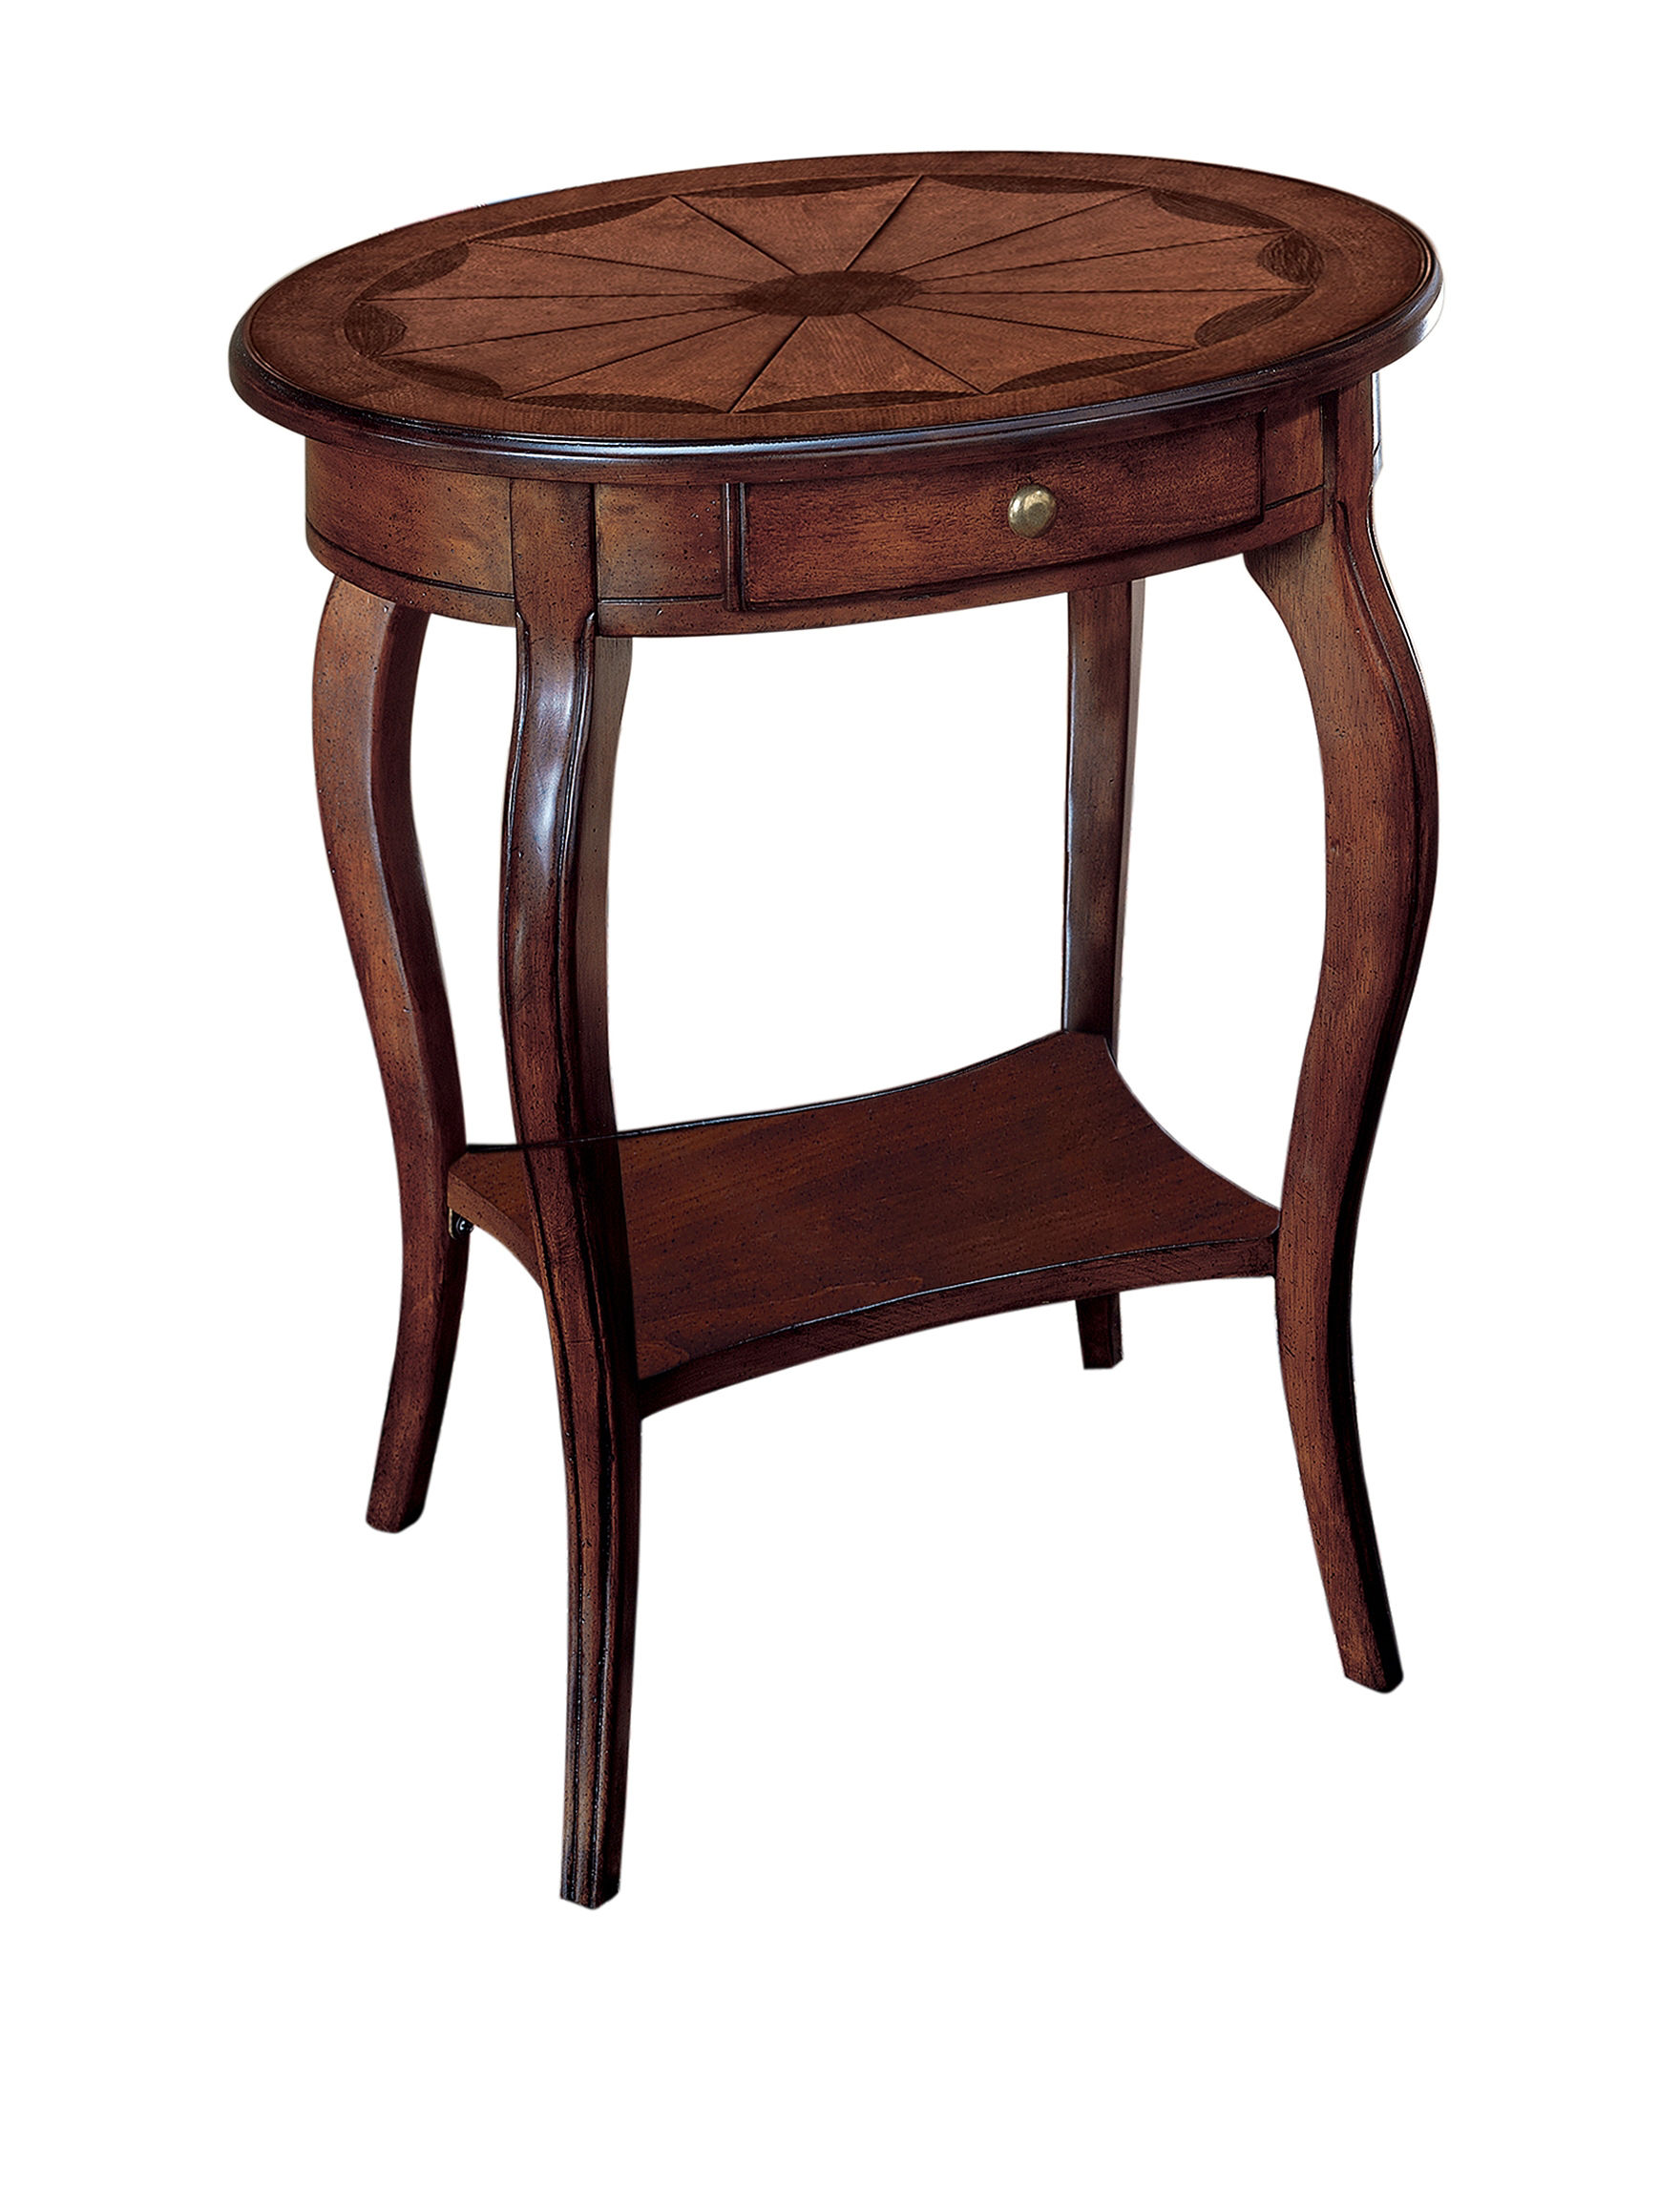 Butler specialty co plantation cherry oval accent table